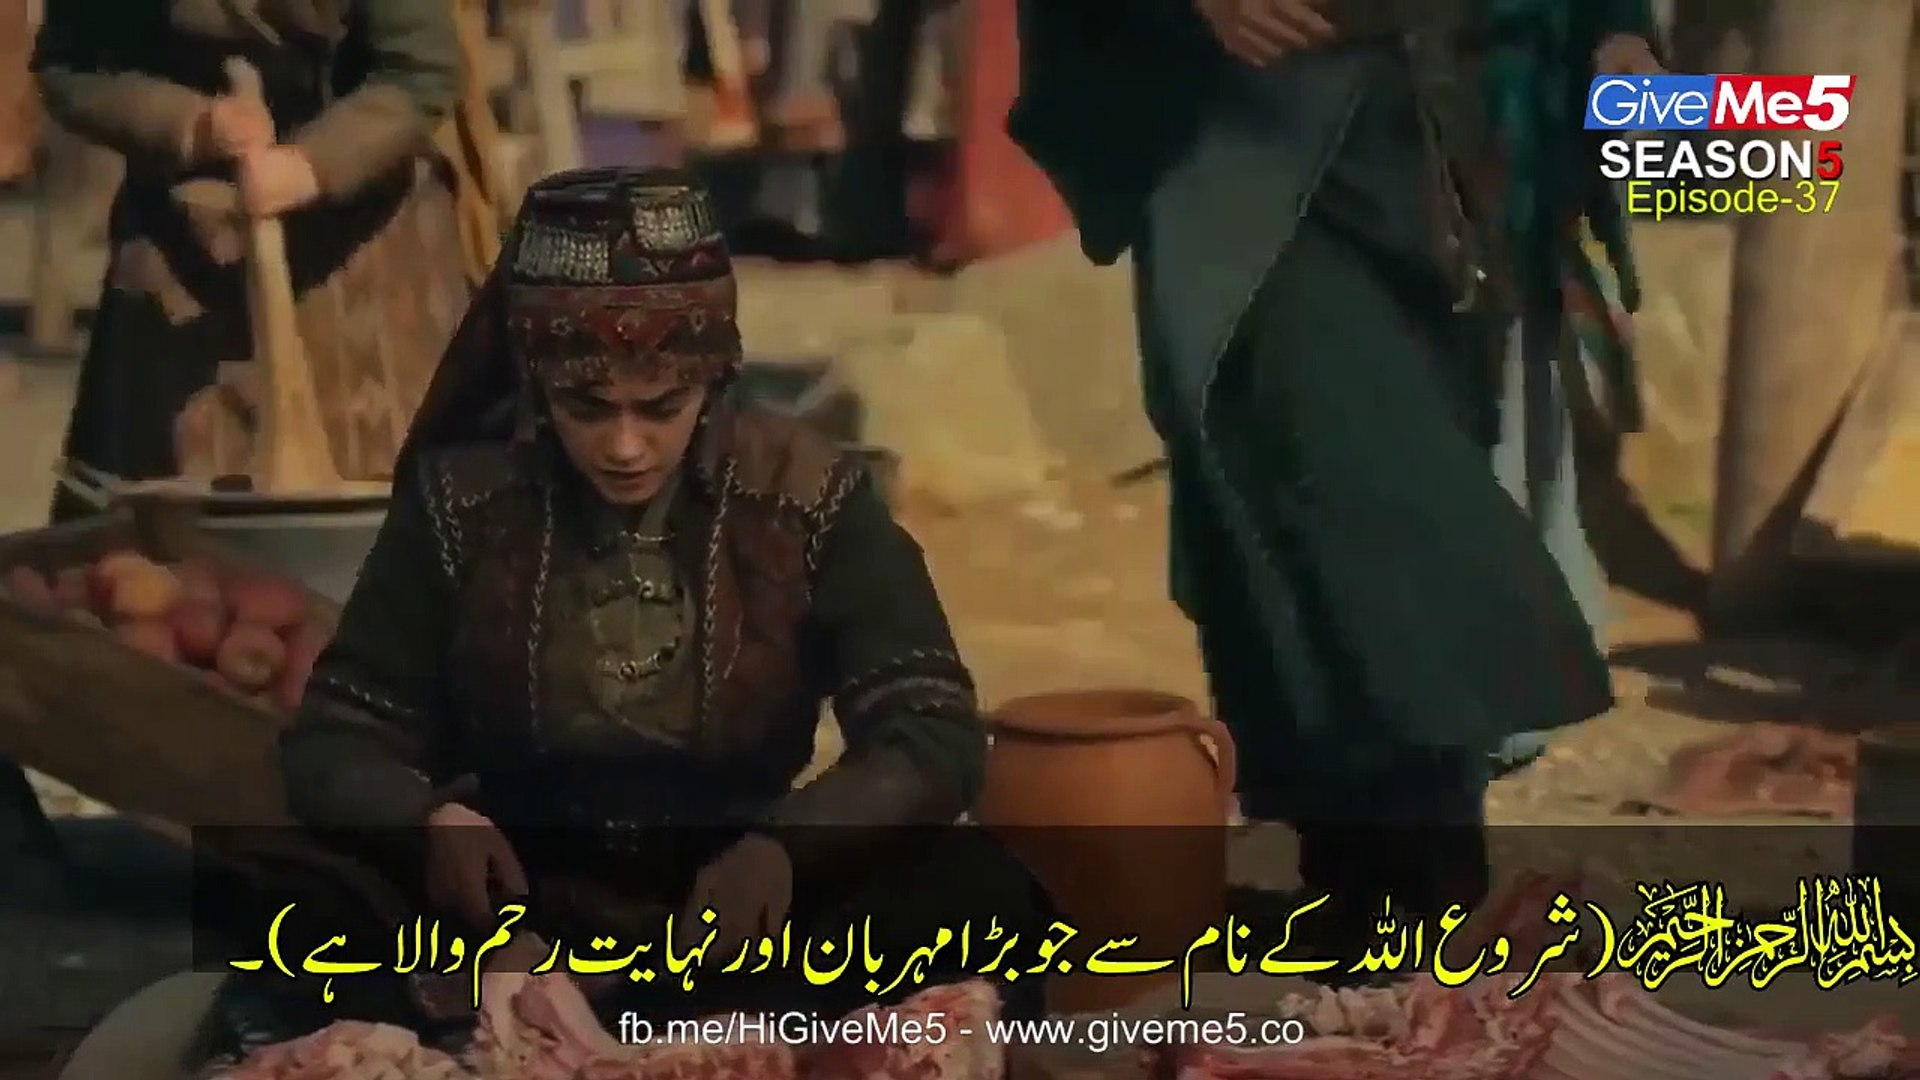 Dirilis Ertugrul Ghazi Season 5 in Urdu Subtitle Episode 37 & 38